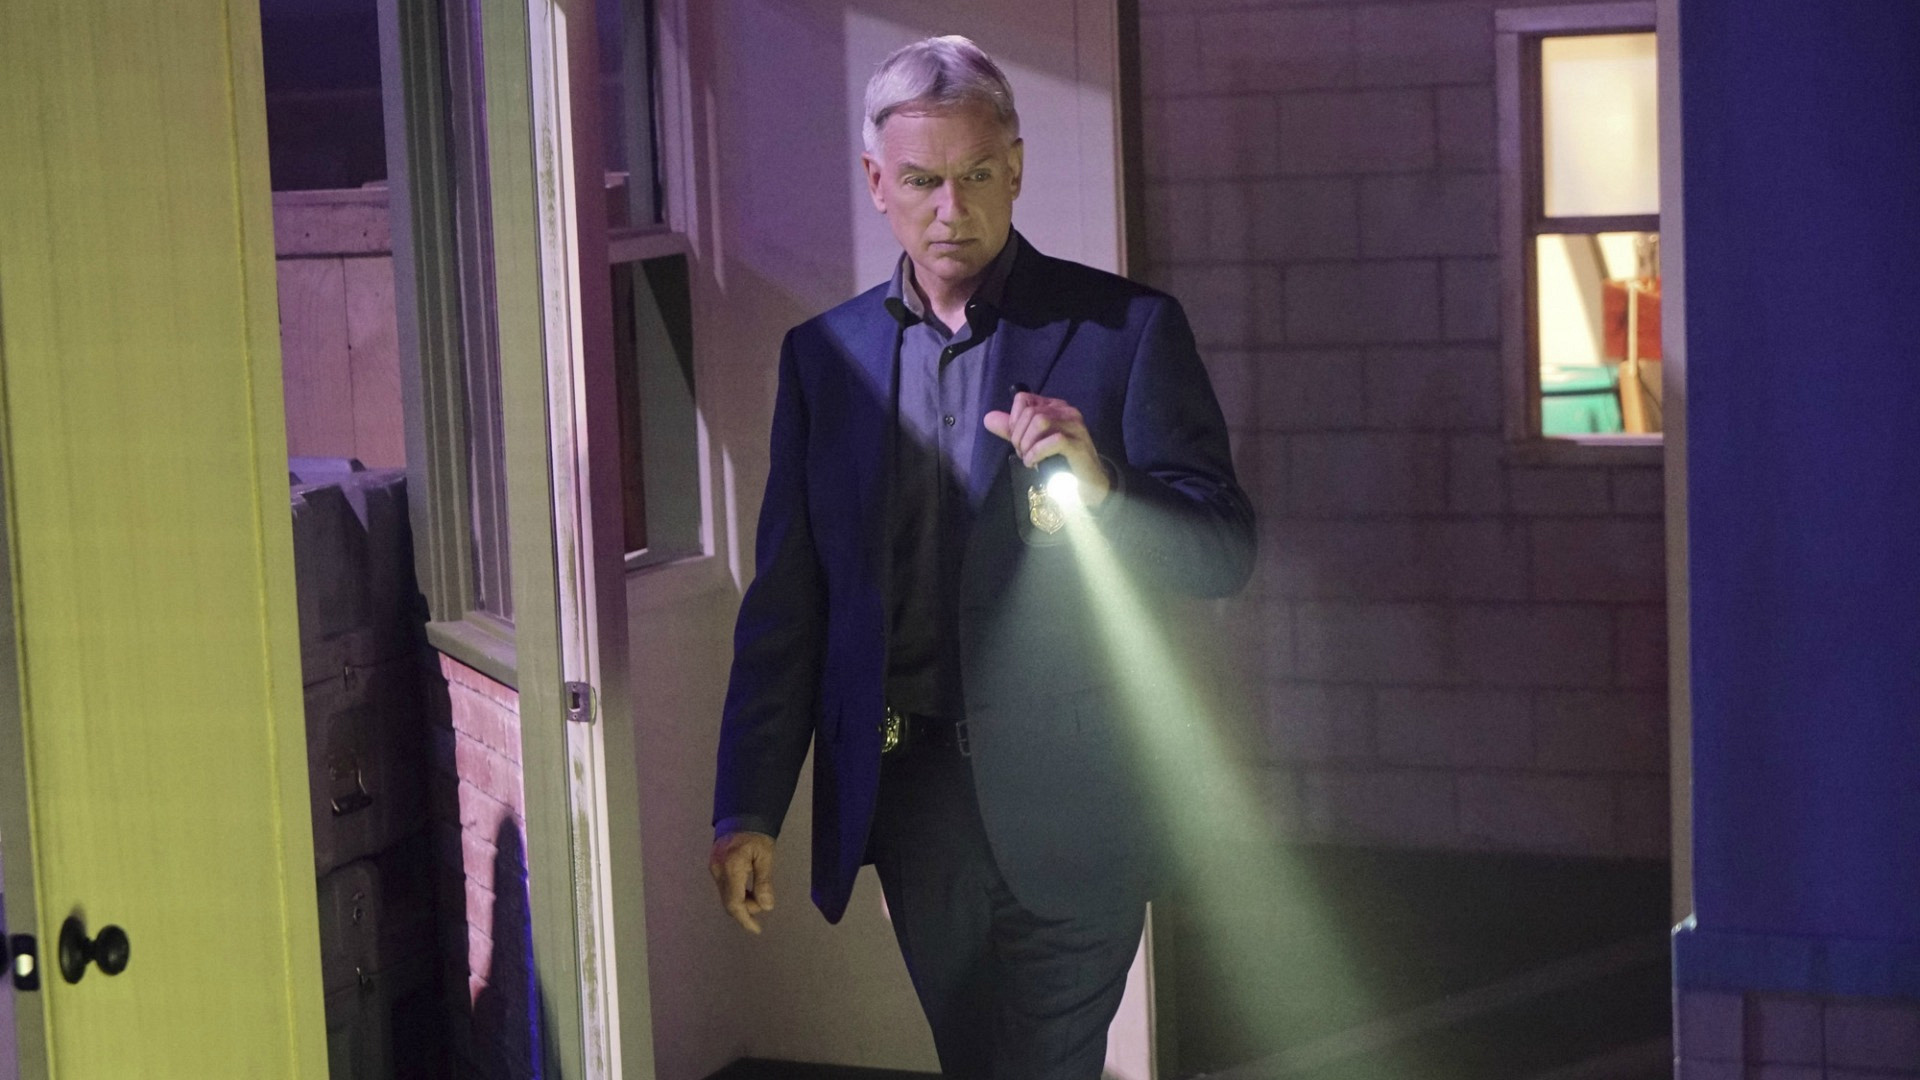 Gibbs searches for the truth.